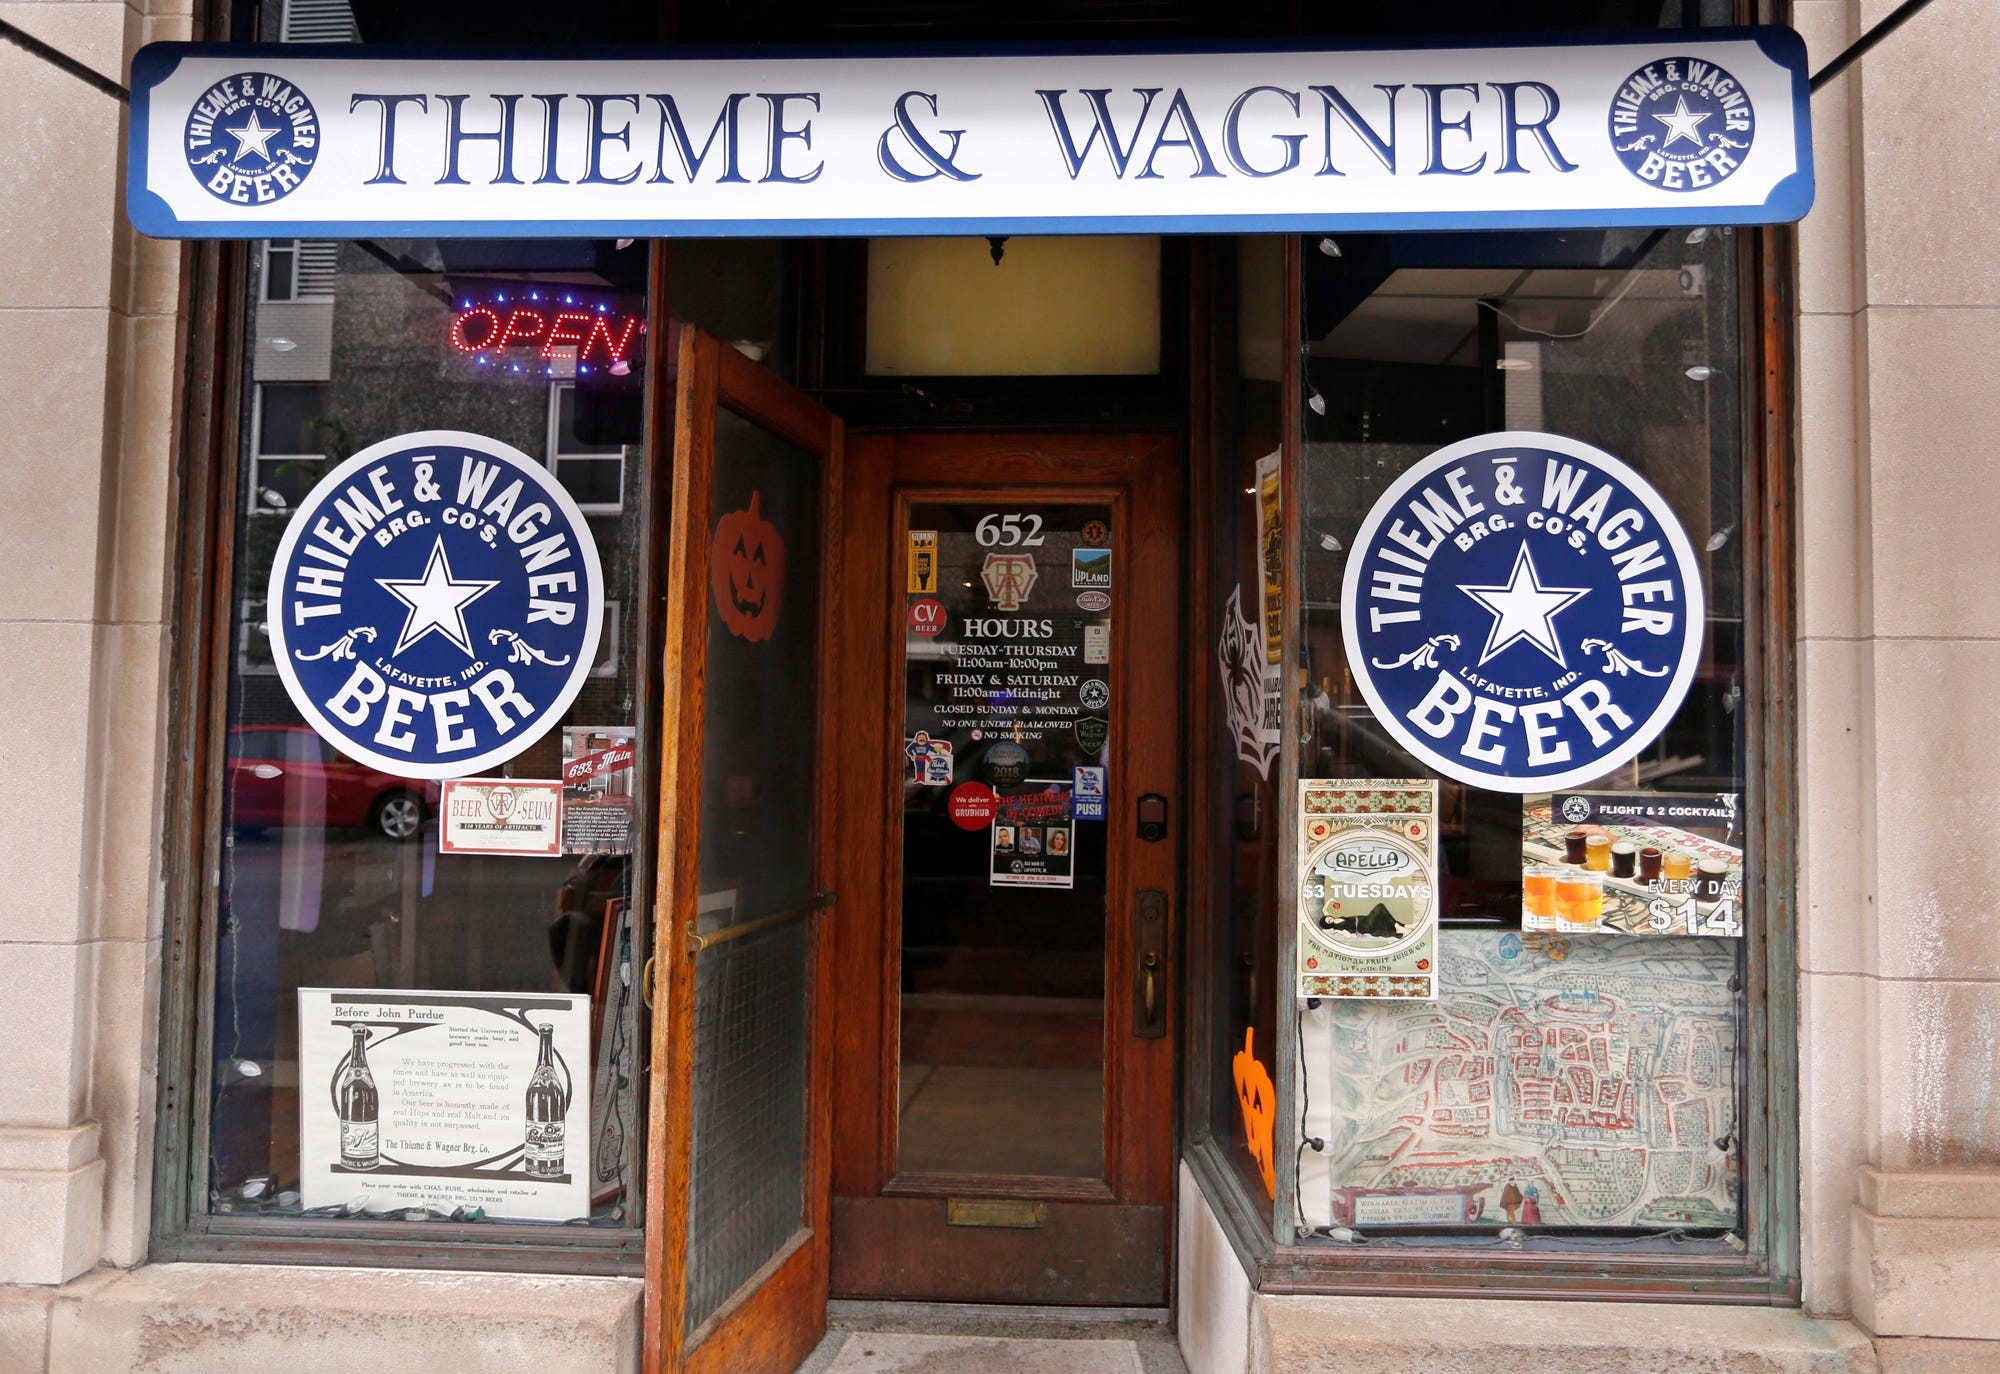 Thieme & Wagner Brewery Wednesday, October 10, 2018, at 652 Main Street in Lafayette.